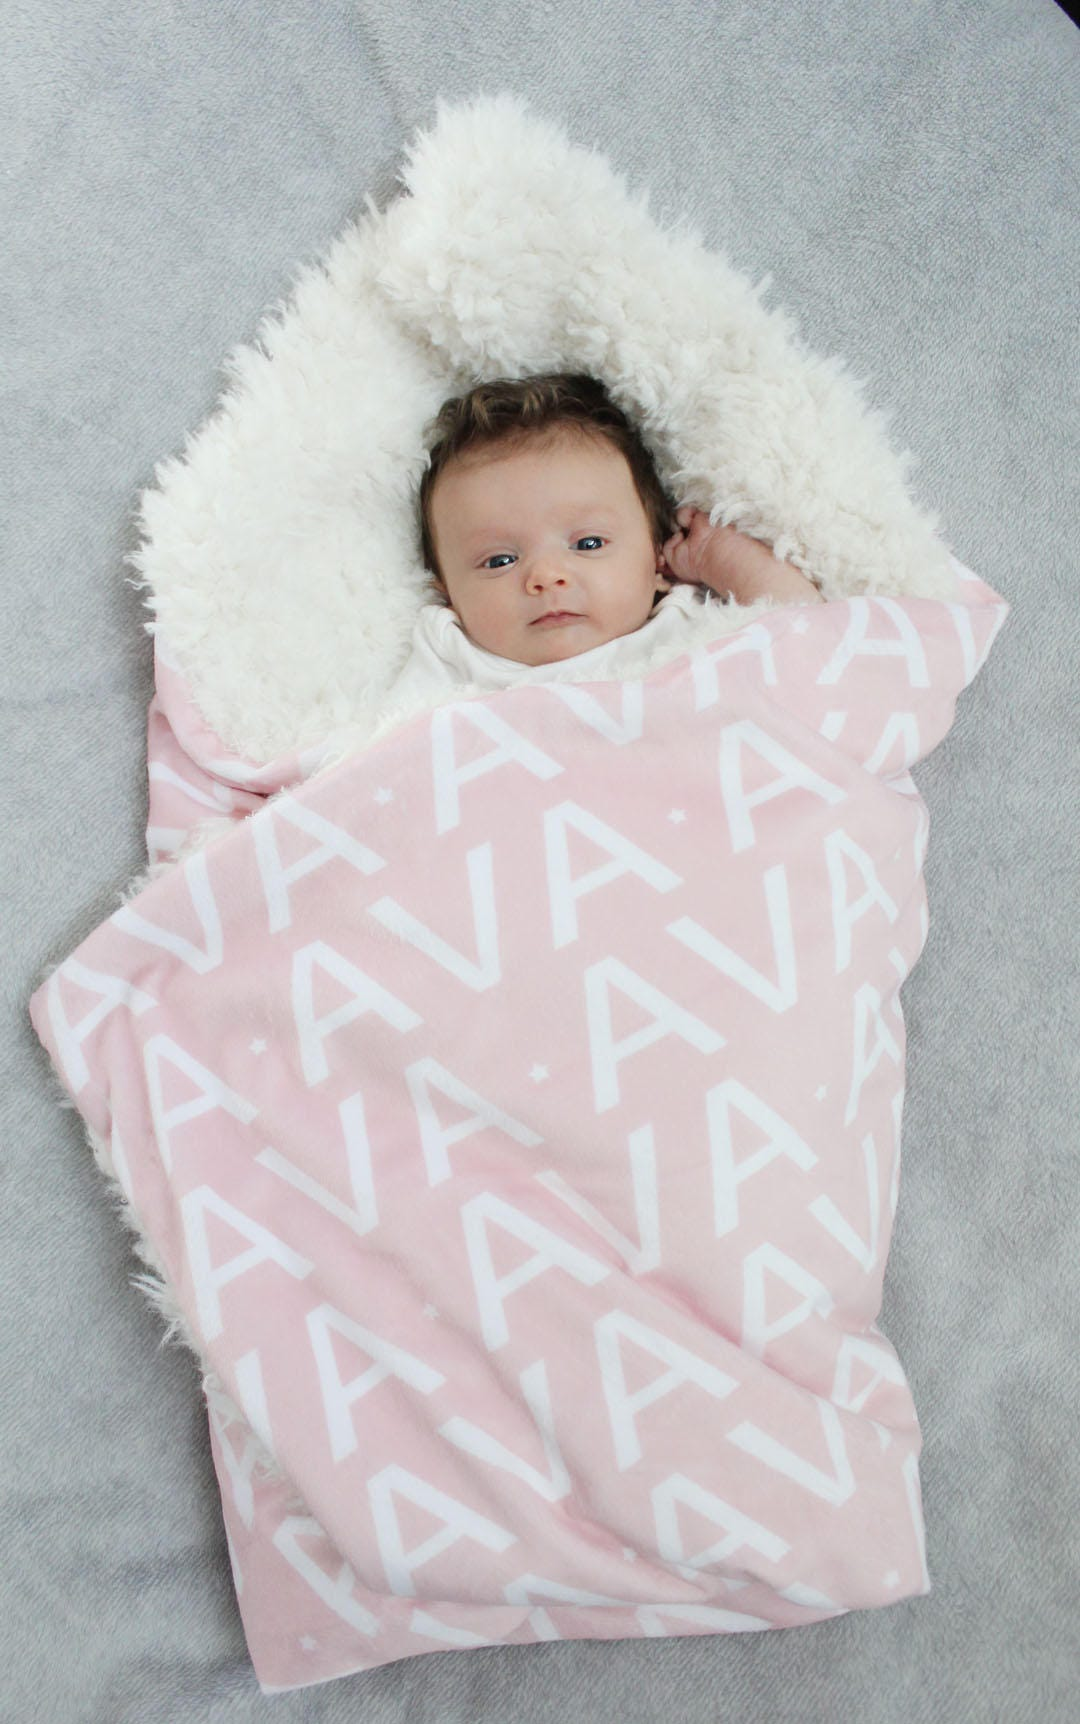 Personalized baby blanket faux fur minky lovey name blanket baby personalized baby blanket faux fur minky lovey name blanket baby gift cloud blanket llama grey newborn gift plush photo prop toddler child negle